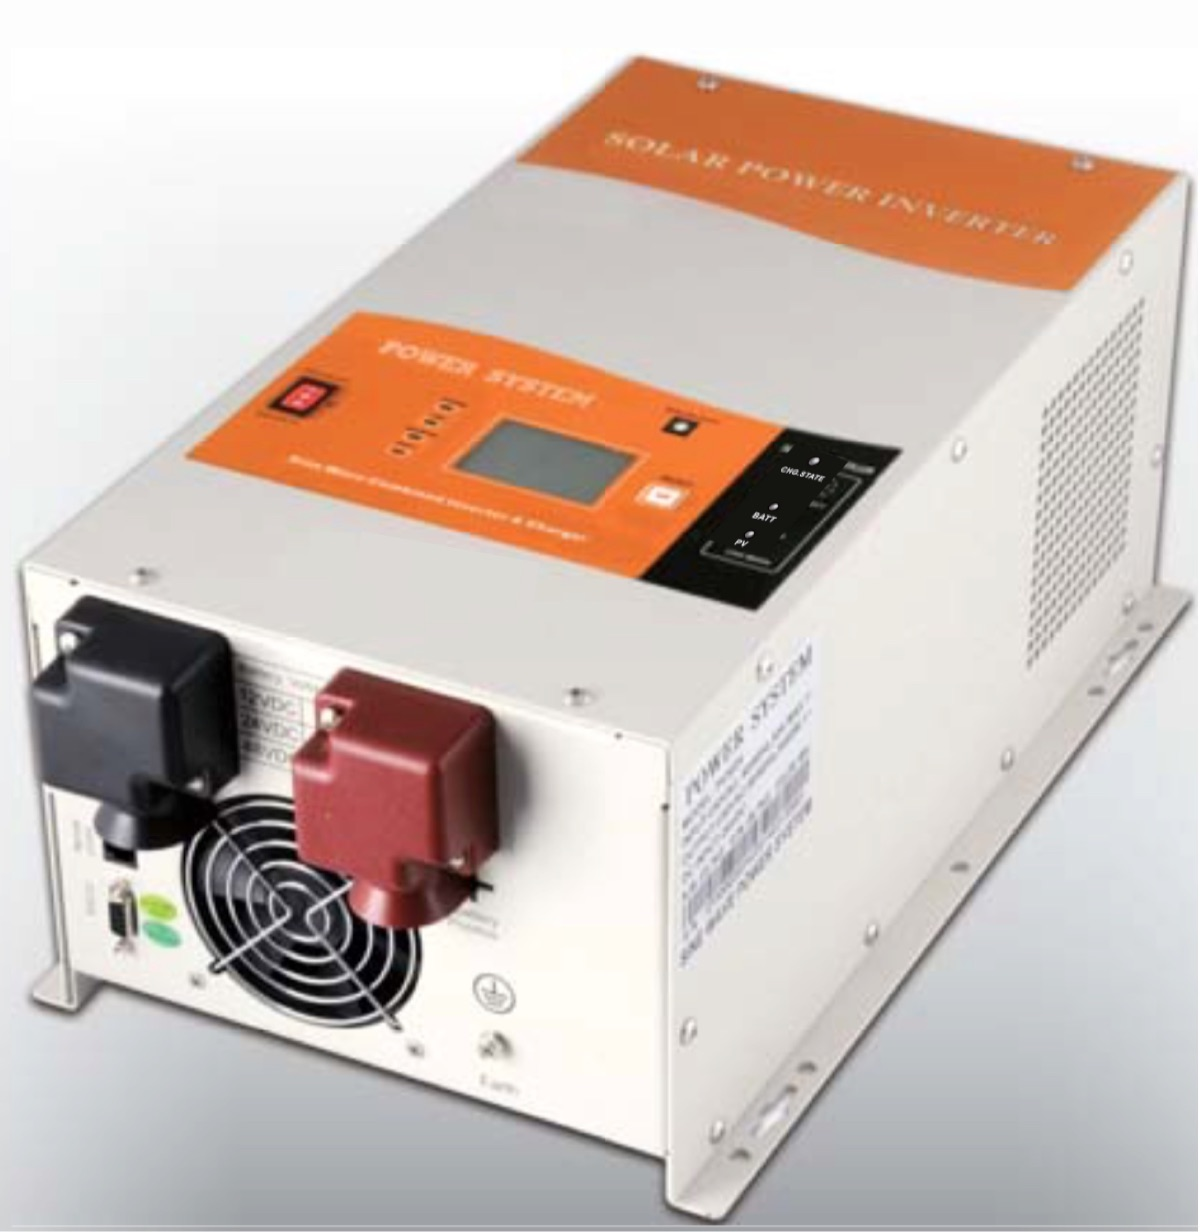 Inverter/Charger with MPPT Charge Controller, 4kW, Off-Grid, 12V to  120/240vac